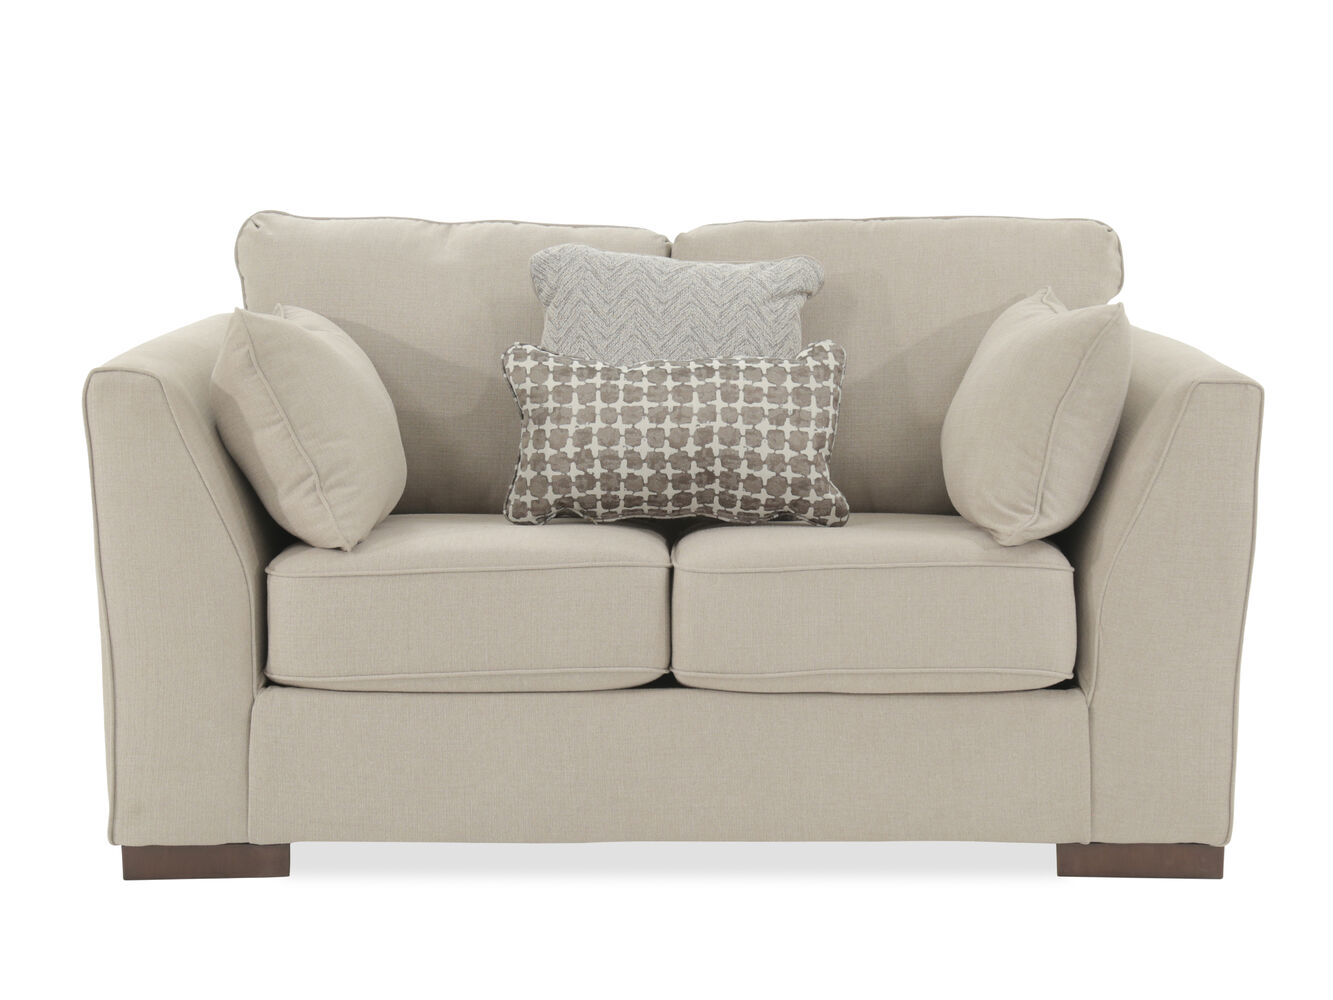 contemporary quot loveseat in gray. contemporary  loveseat in gray  mathis brothers furniture